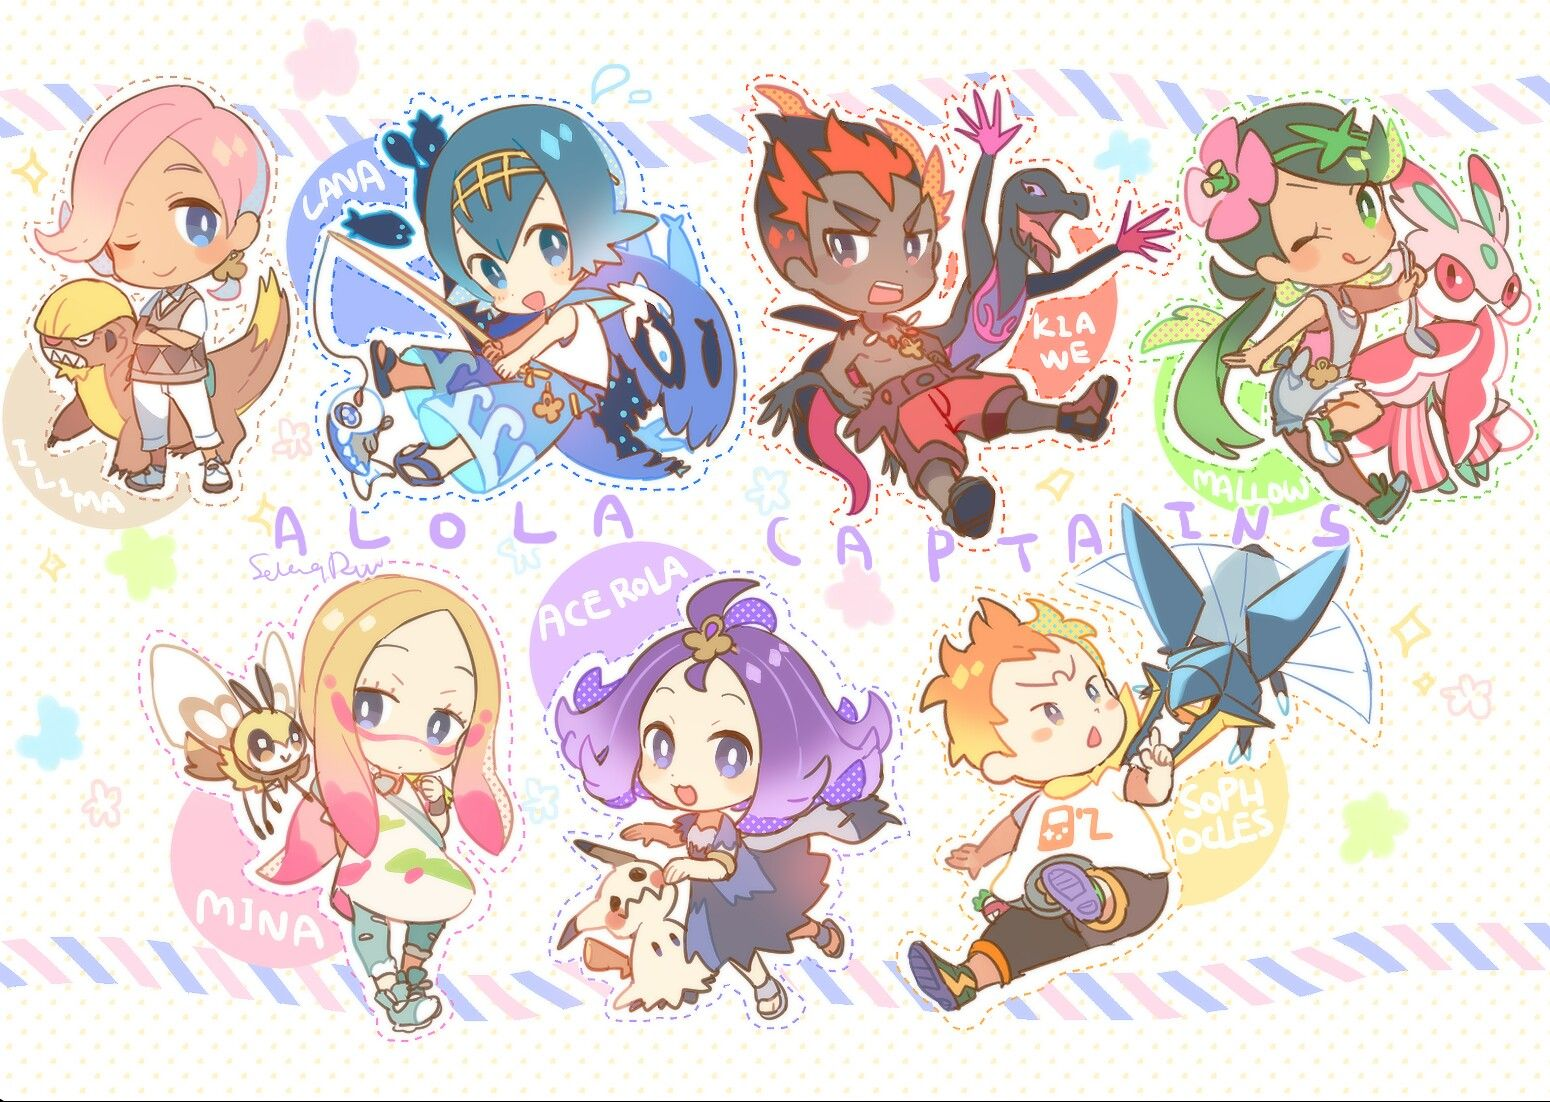 Pin by ♡Zai♡ on AAA Pokemon, Pokemon sun, Pokemon characters